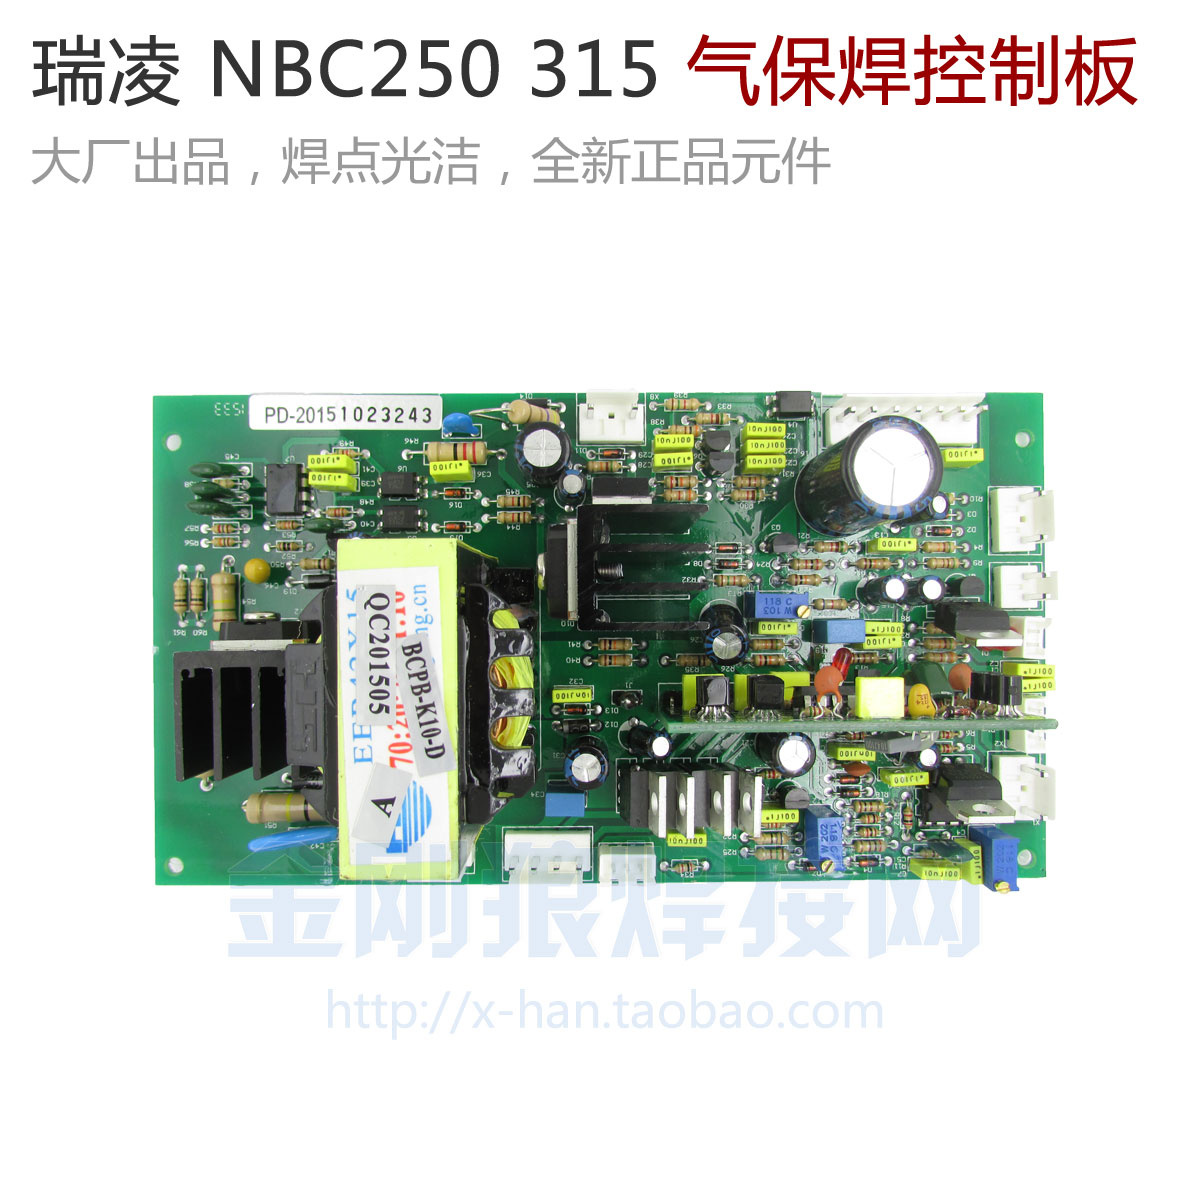 Power Tool Accessories Nbc250 315 Mos Inverter Carbon Dioxide Gas Welder Control Panel Circuit Board Spare No Cost At Any Cost Tools